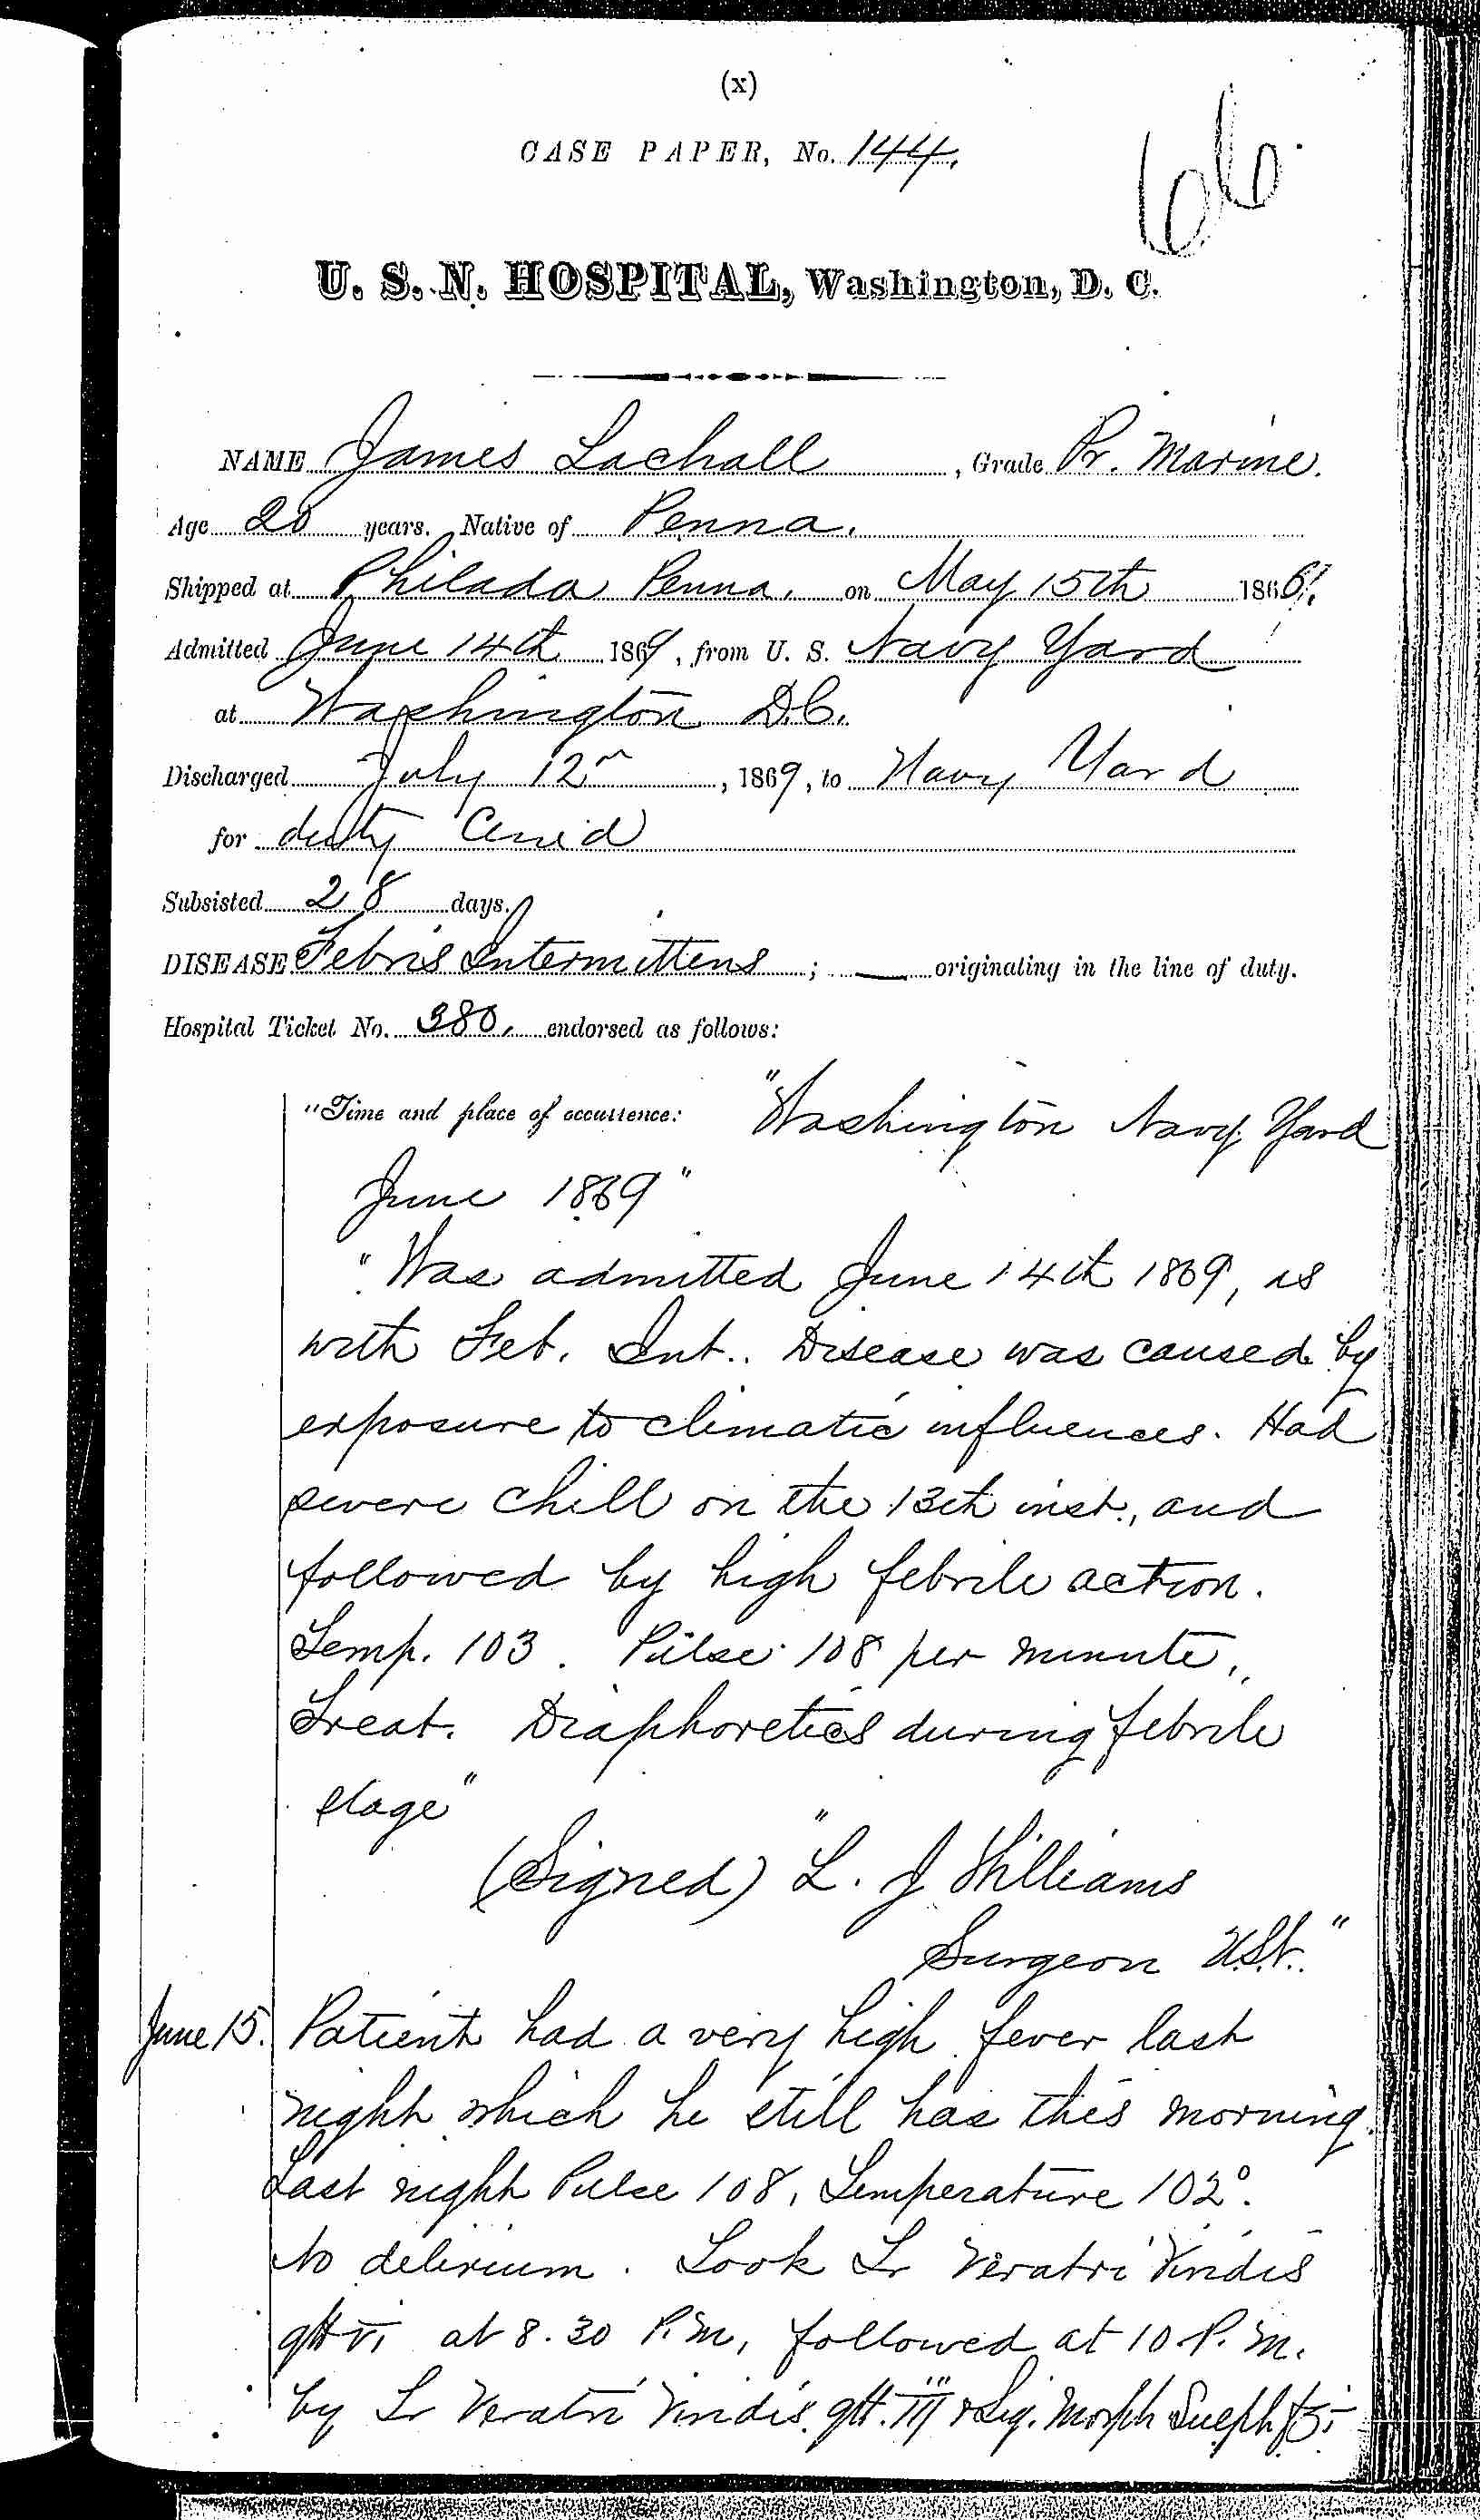 Entry for James Lachall (page 1 of 5) in the log Hospital Tickets and Case Papers - Naval Hospital - Washington, D.C. - 1868-69